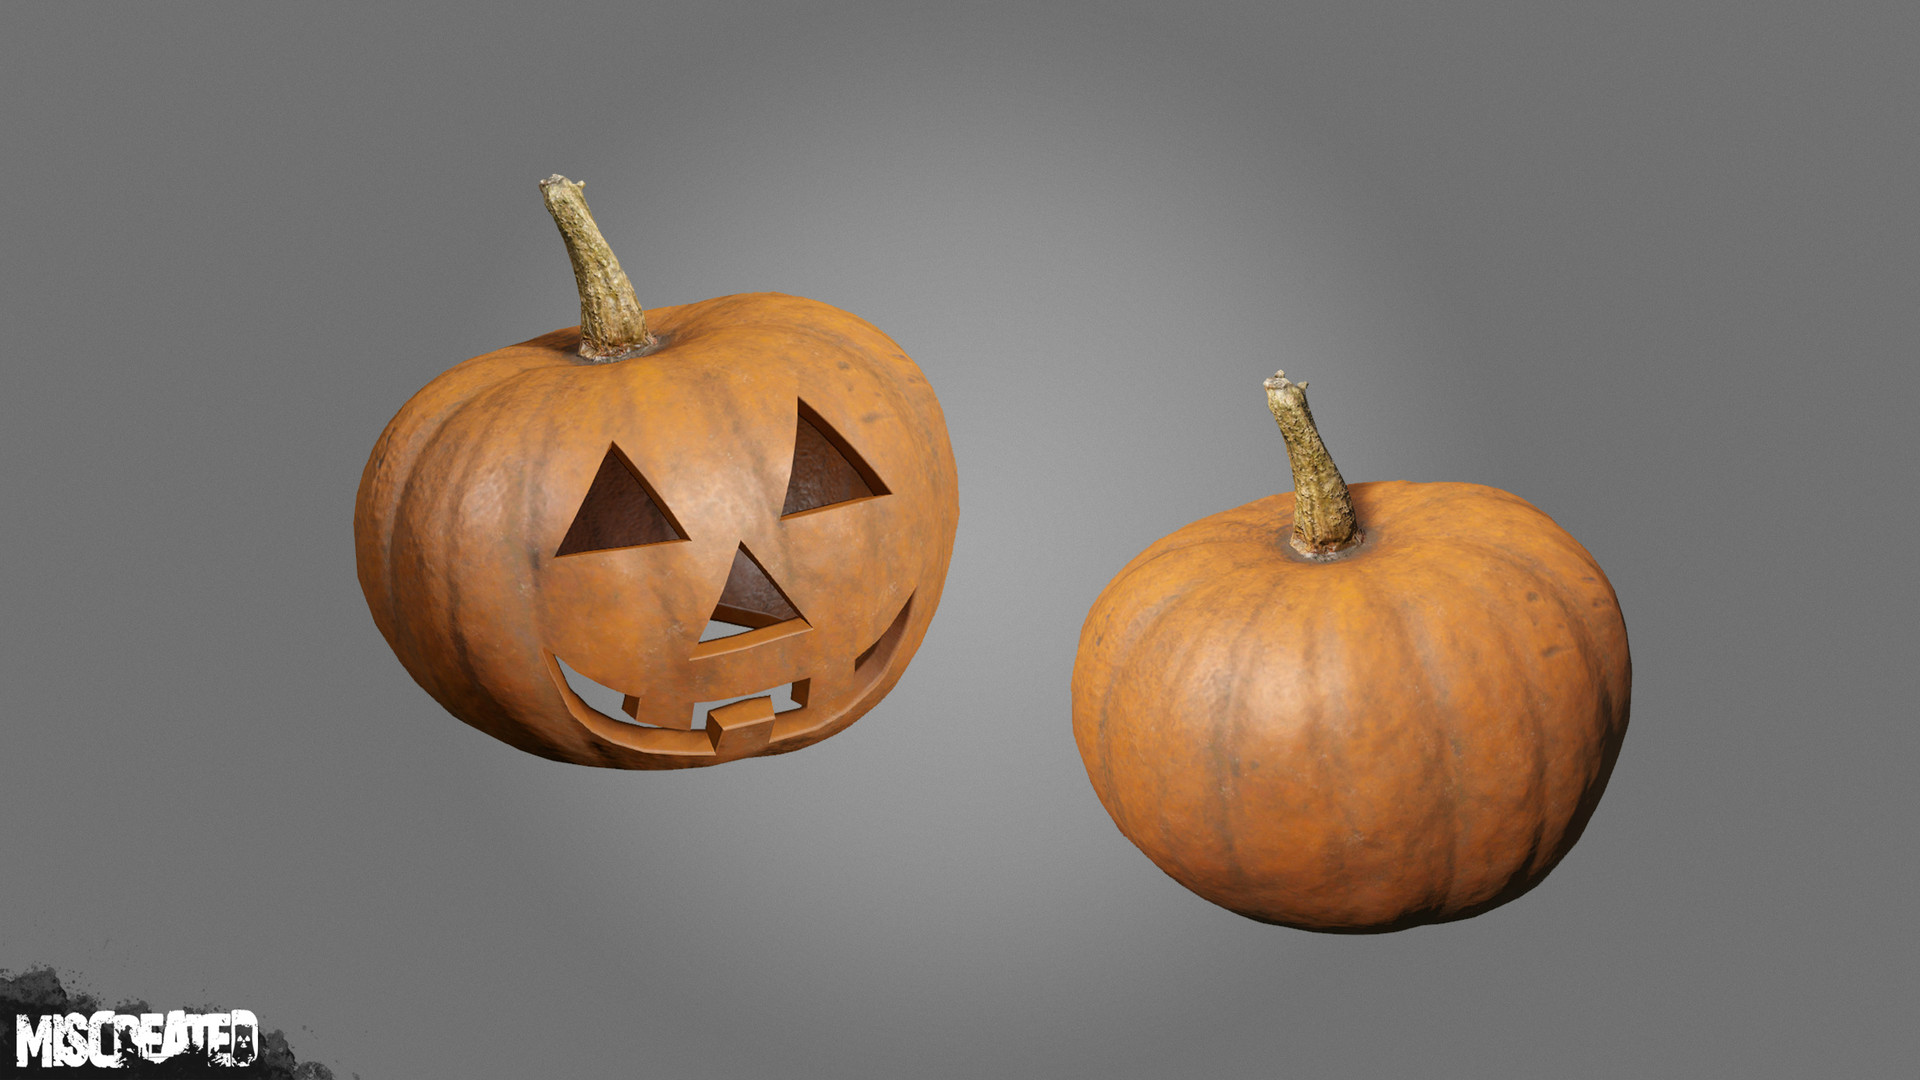 Pumpkin/ Jack o Lantern made for the Halloween 2017 update. Comes as a consumable, base part (light source) and helmet